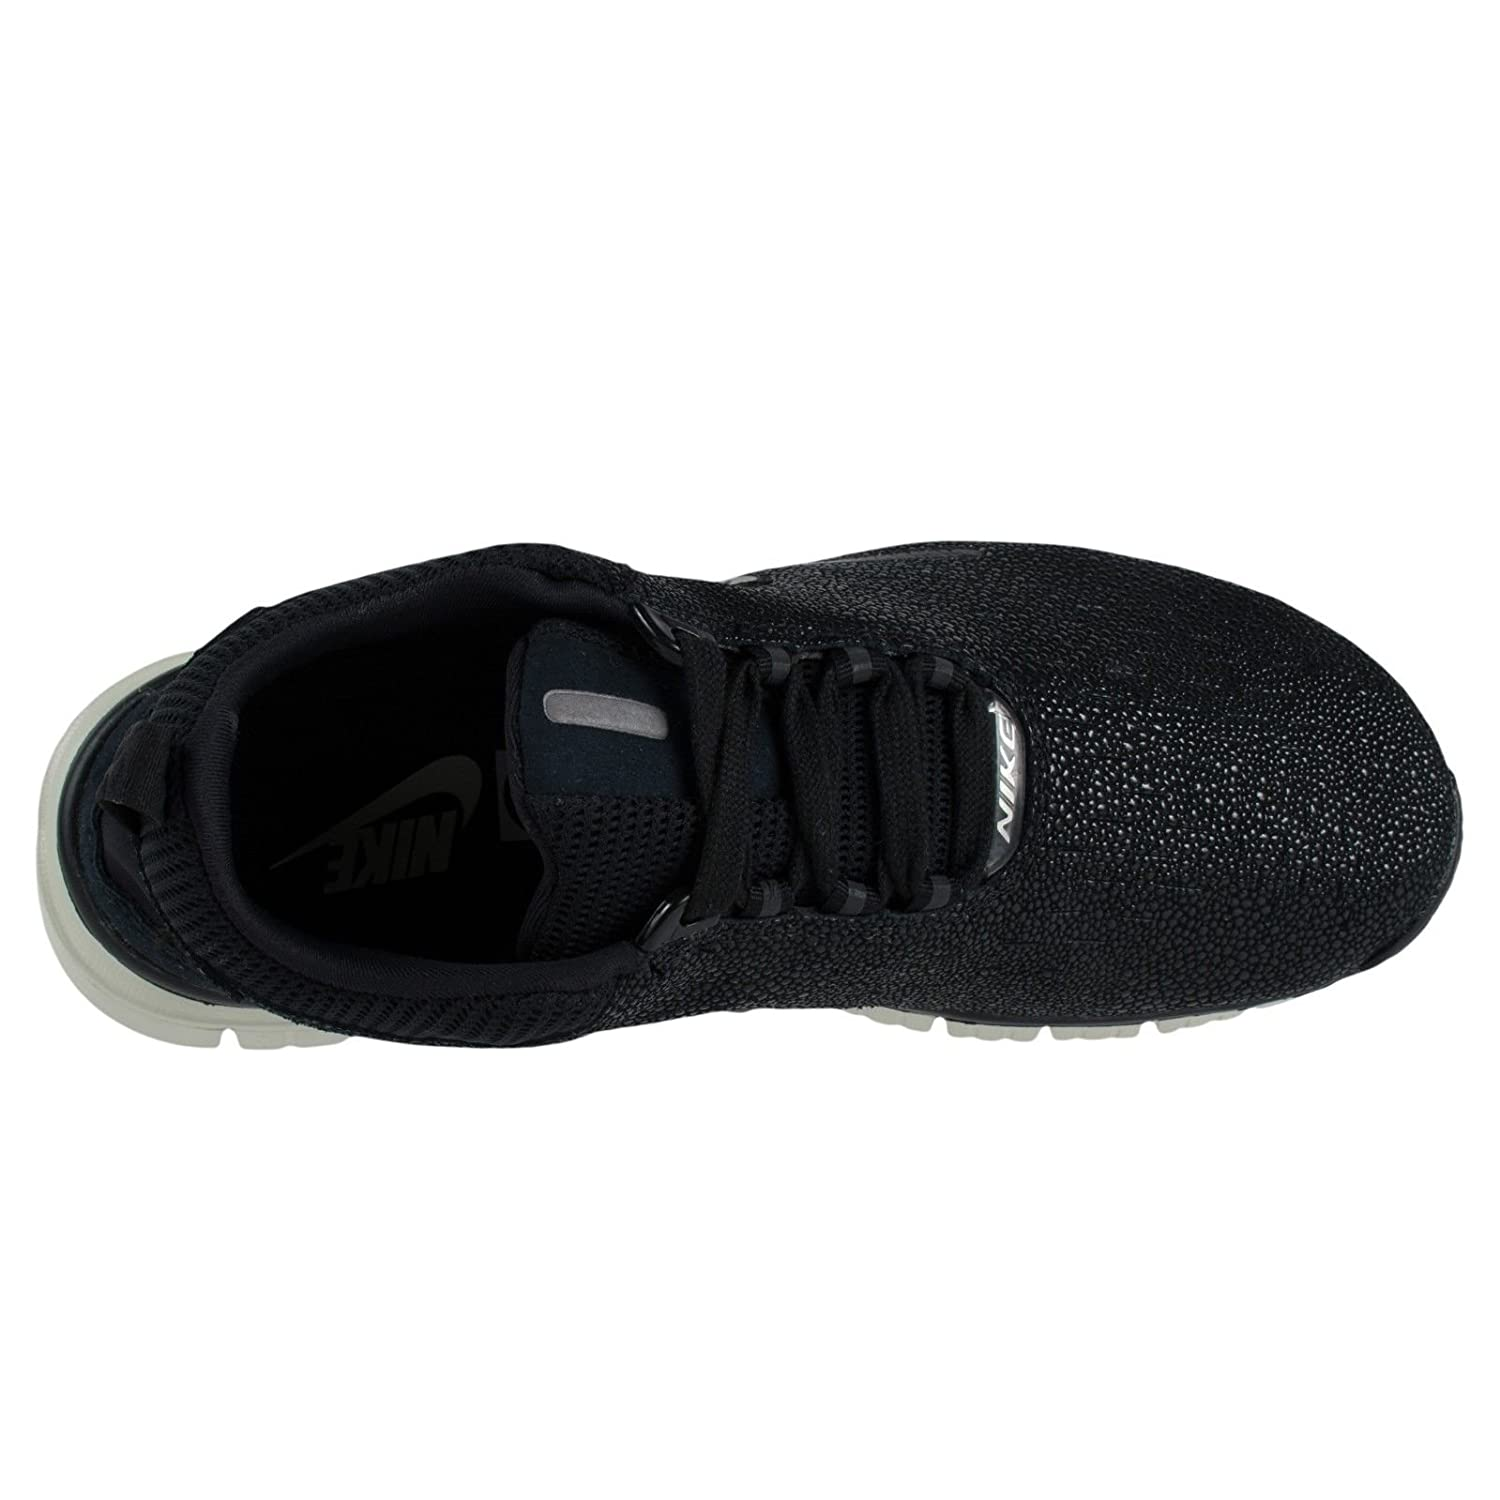 best loved 52694 b2d75 NIKE FREE OG 14 PA SNEAKERS STINGRAY PACK BLACK BLACK SEA GLASS 705006 001  Black black-black-sea Glass 11 D(M) US  Amazon.in  Shoes   Handbags